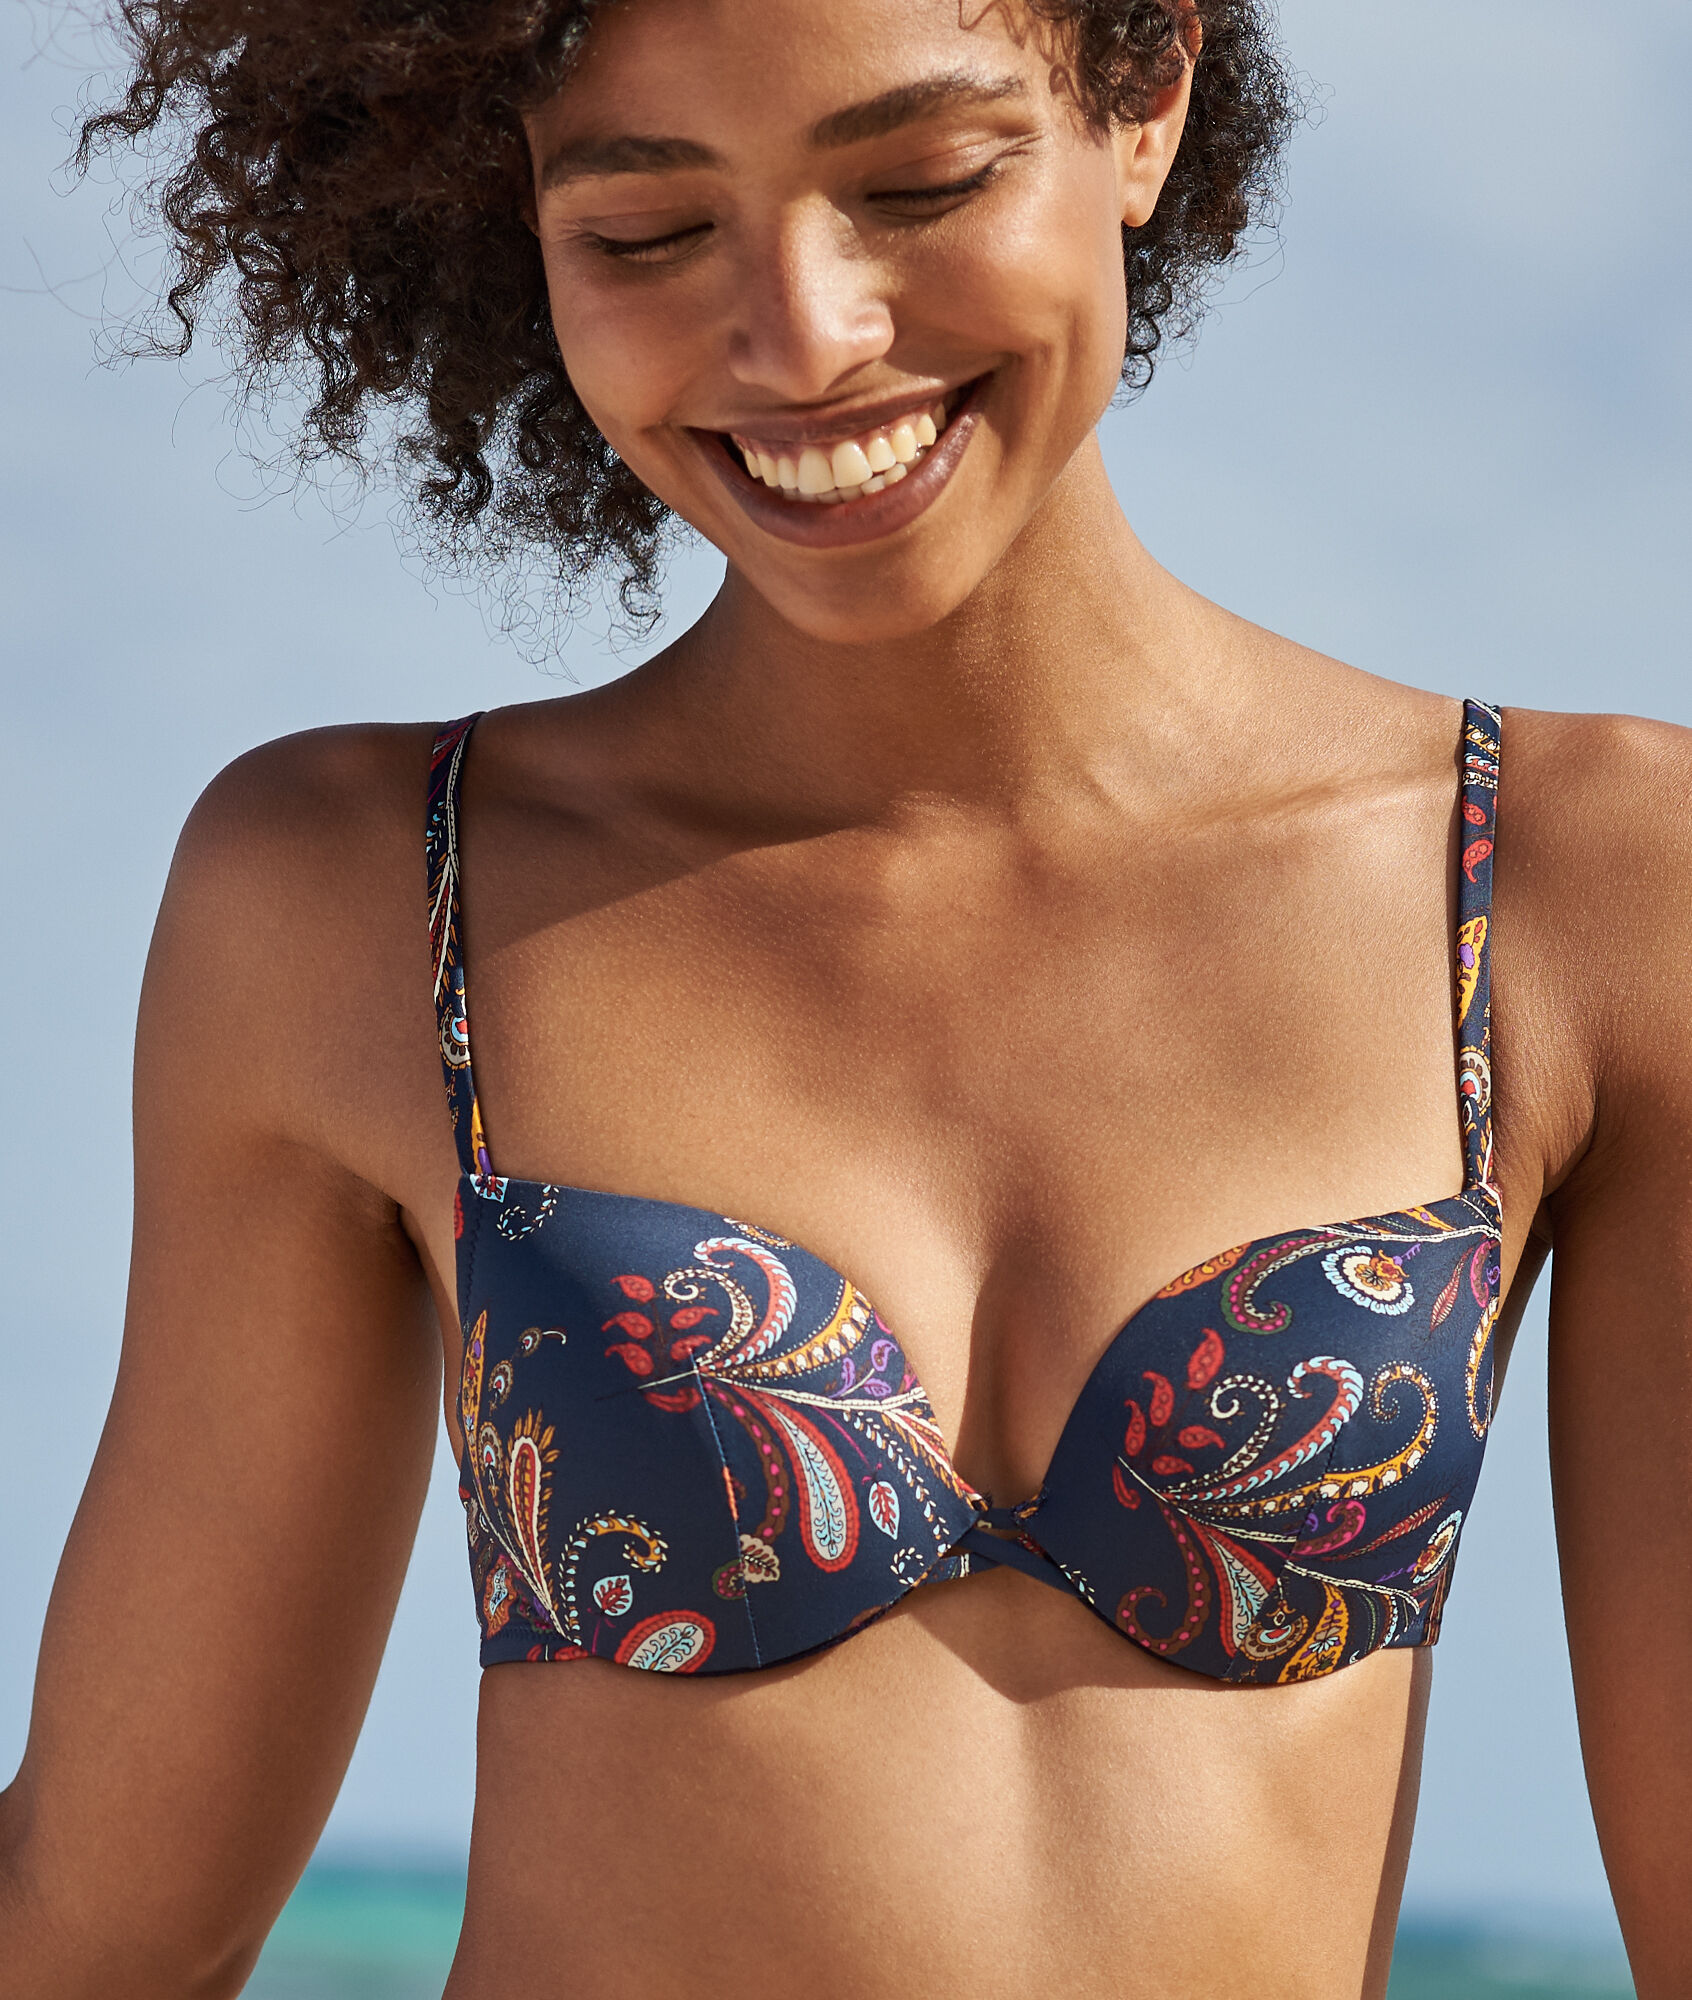 super populaire db849 bcae9 Swimwear push-up bra - WINONA - NAVY PRINTED - Etam